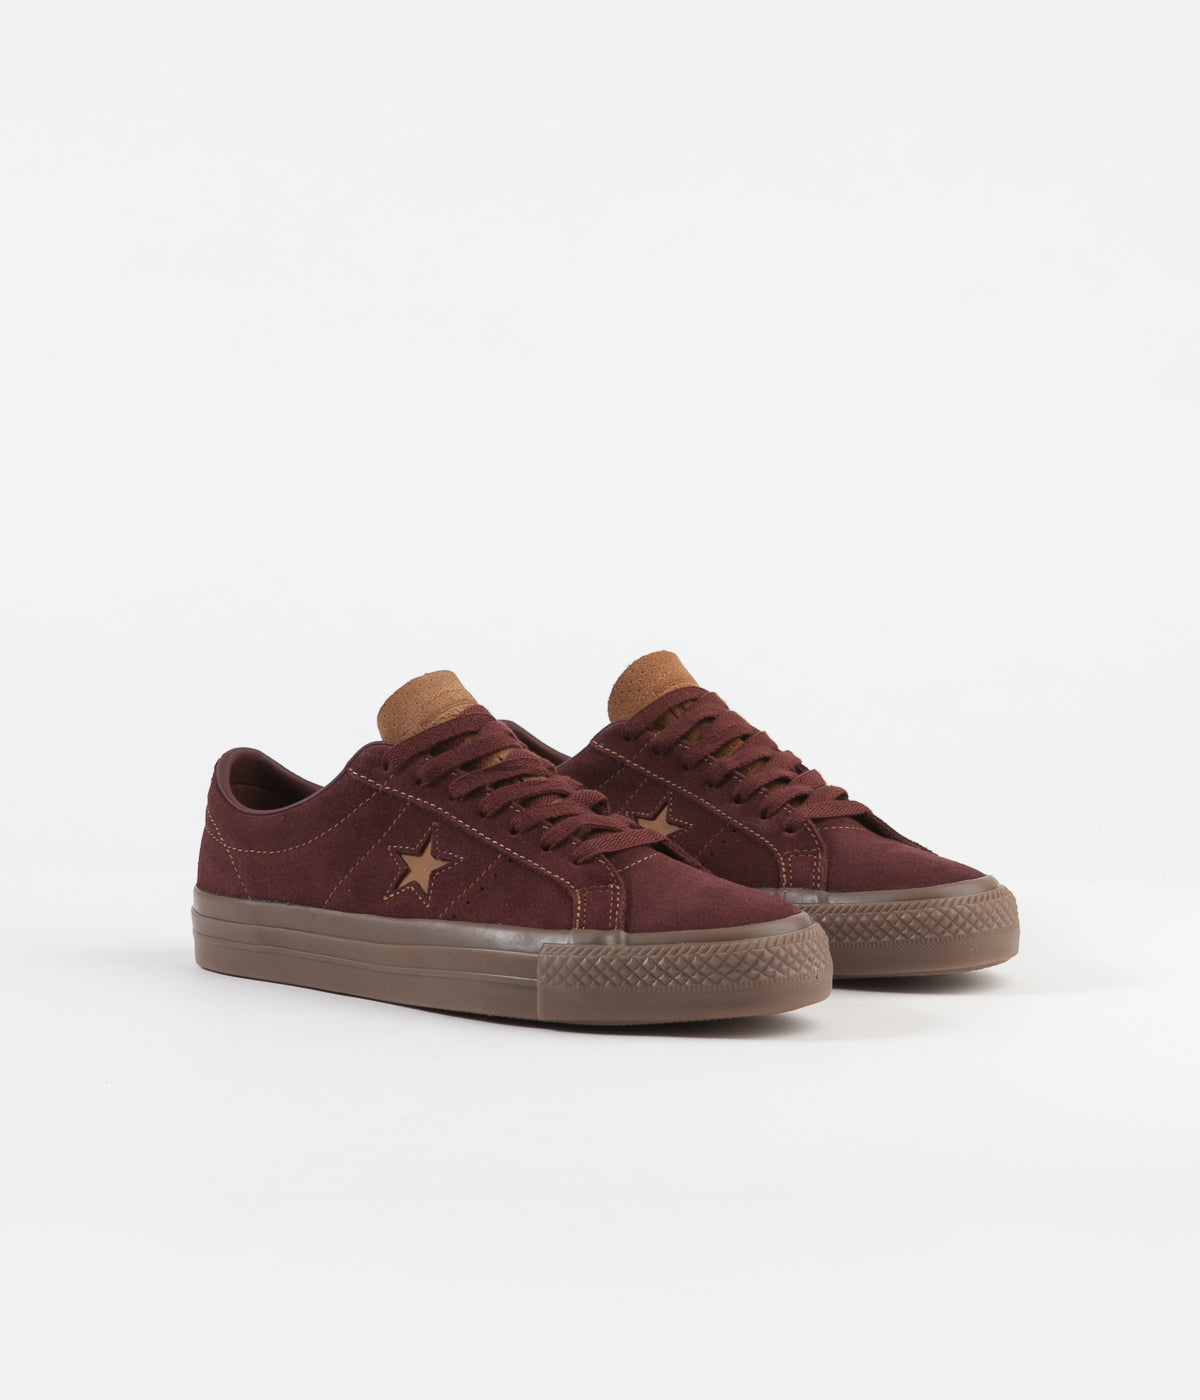 Converse One Star Pro Ox Shoes Barkroot Brown Ale Brown